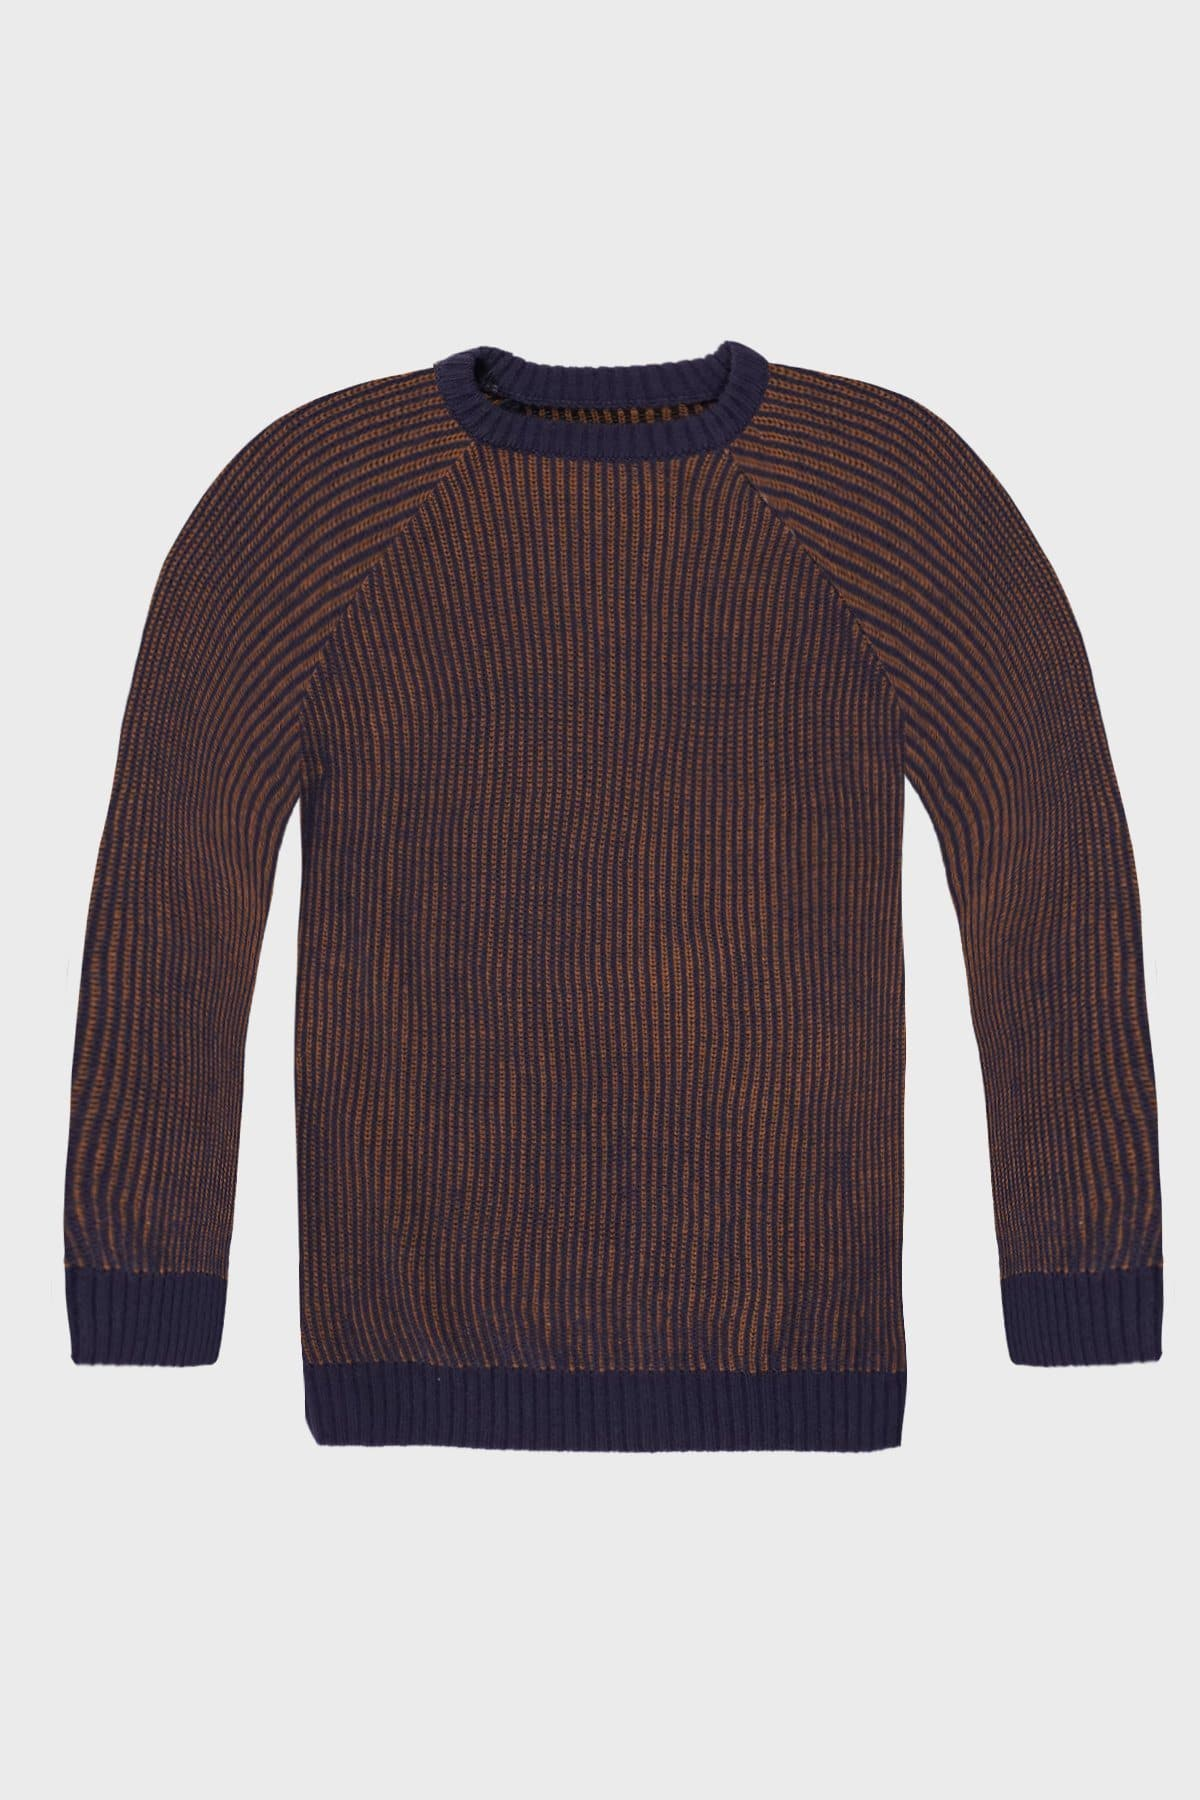 Blue & Brown Stripped Knitted Jumper - Life in Paradigm Menswear London